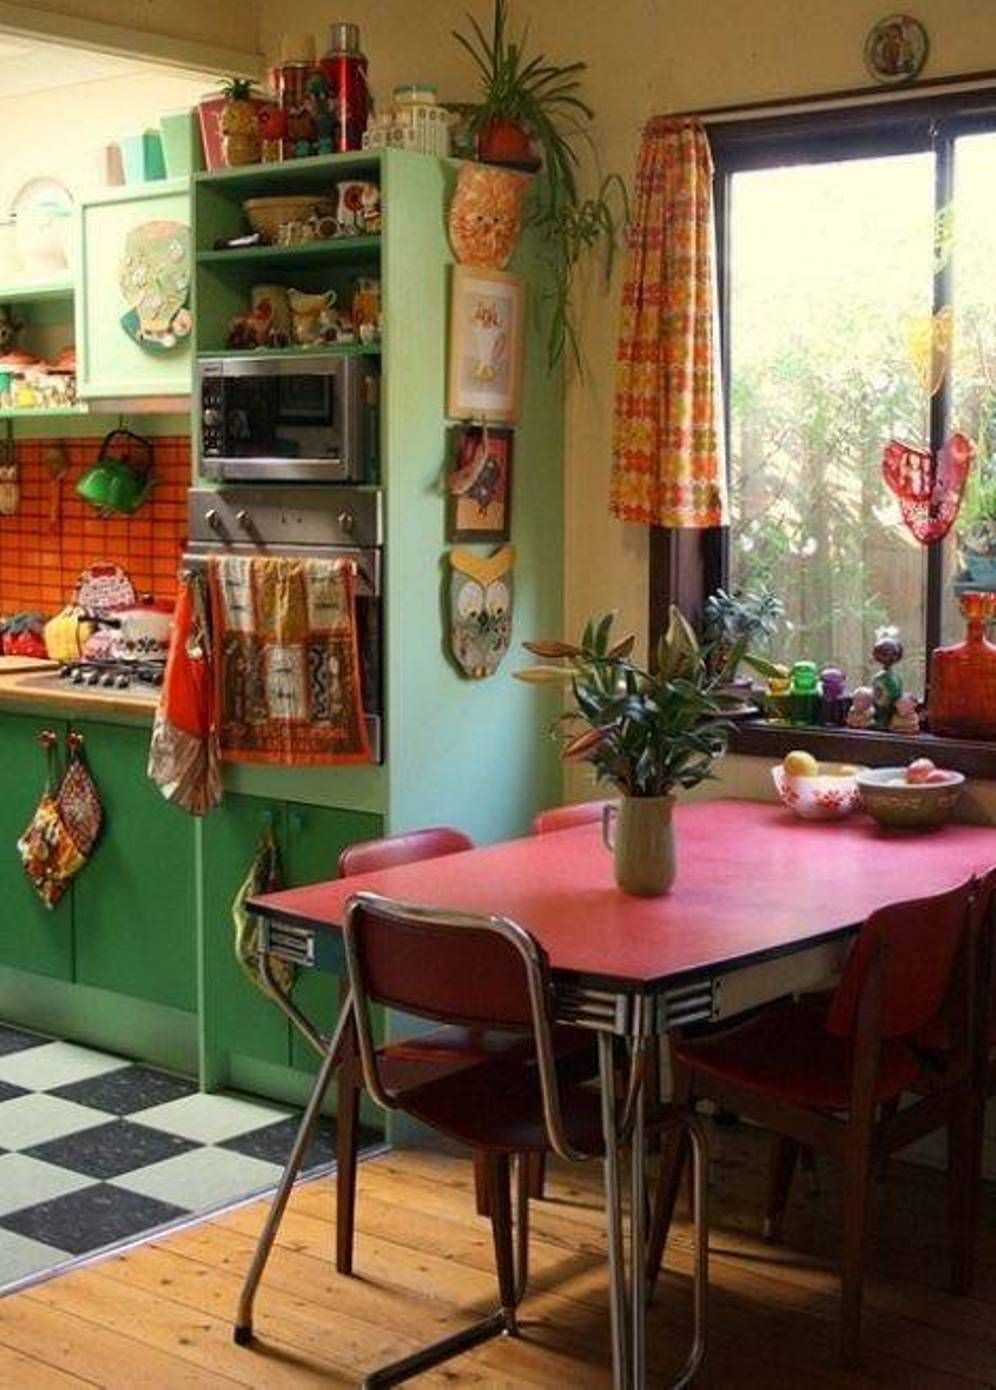 vintage home interior pictures interior bohemian style of home interior design with retro on boho chic interior design kitchen id=34550